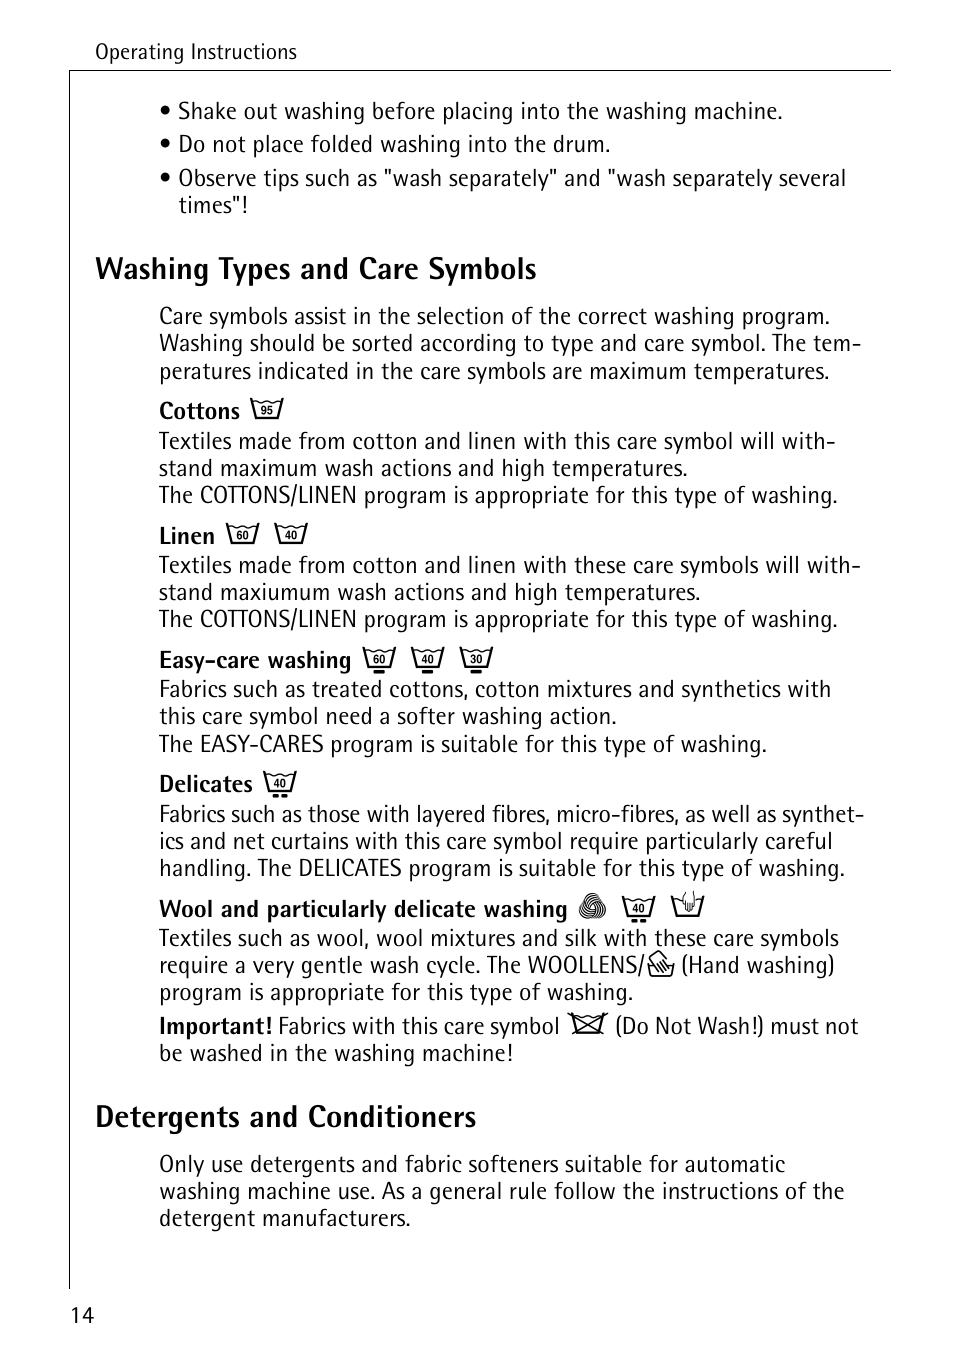 Washing types and care symbols detergents and conditioners washing types and care symbols detergents and conditioners electrolux 86720 user manual page 14 52 buycottarizona Gallery